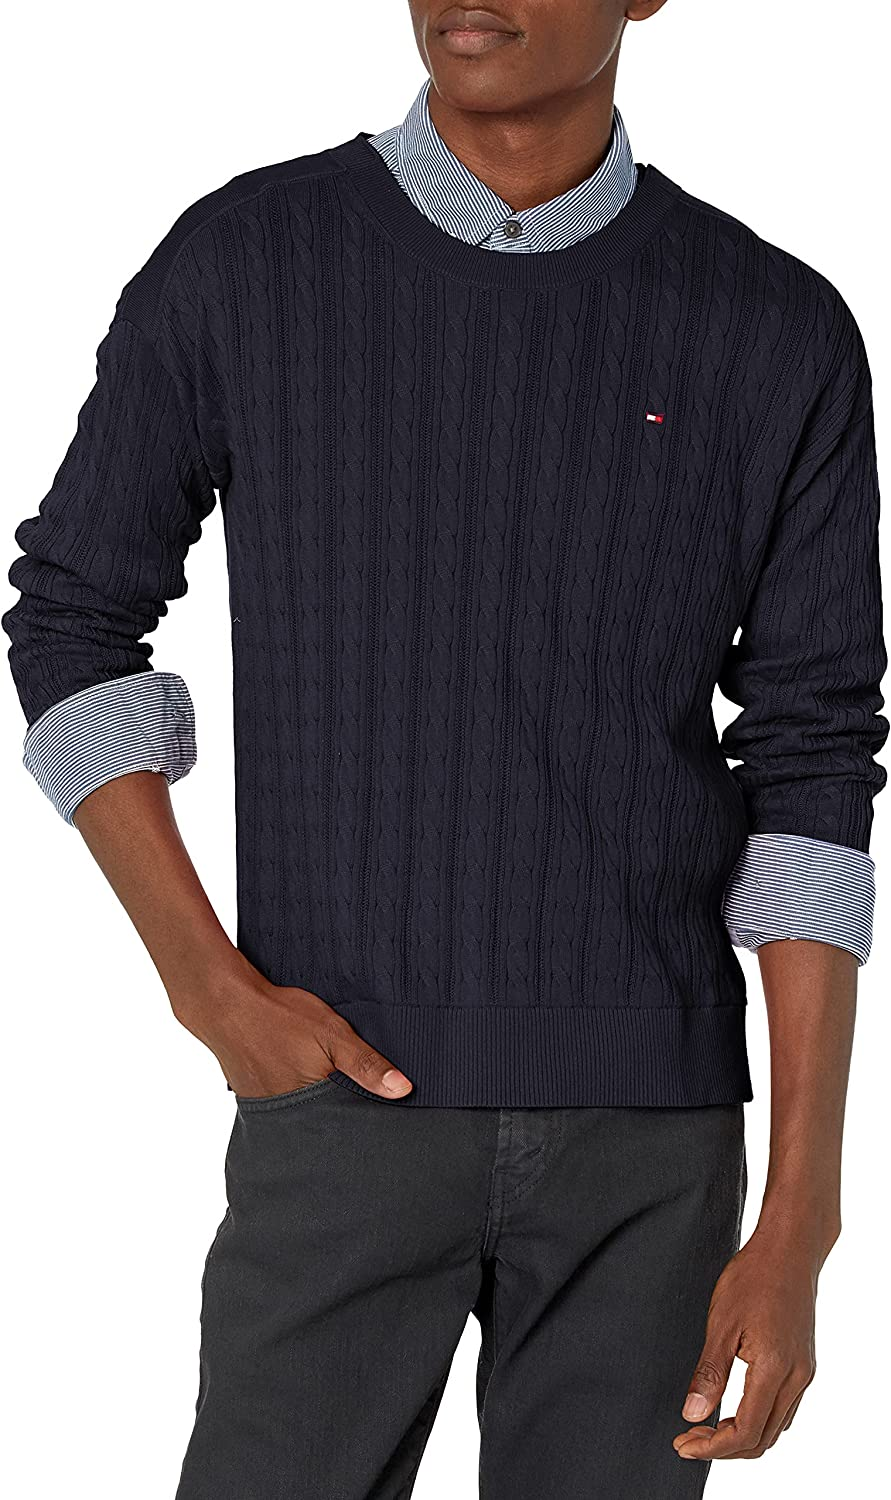 Tommy Hilfiger Men's Adaptive Cable Knit Sweater with Closures at Shoulders